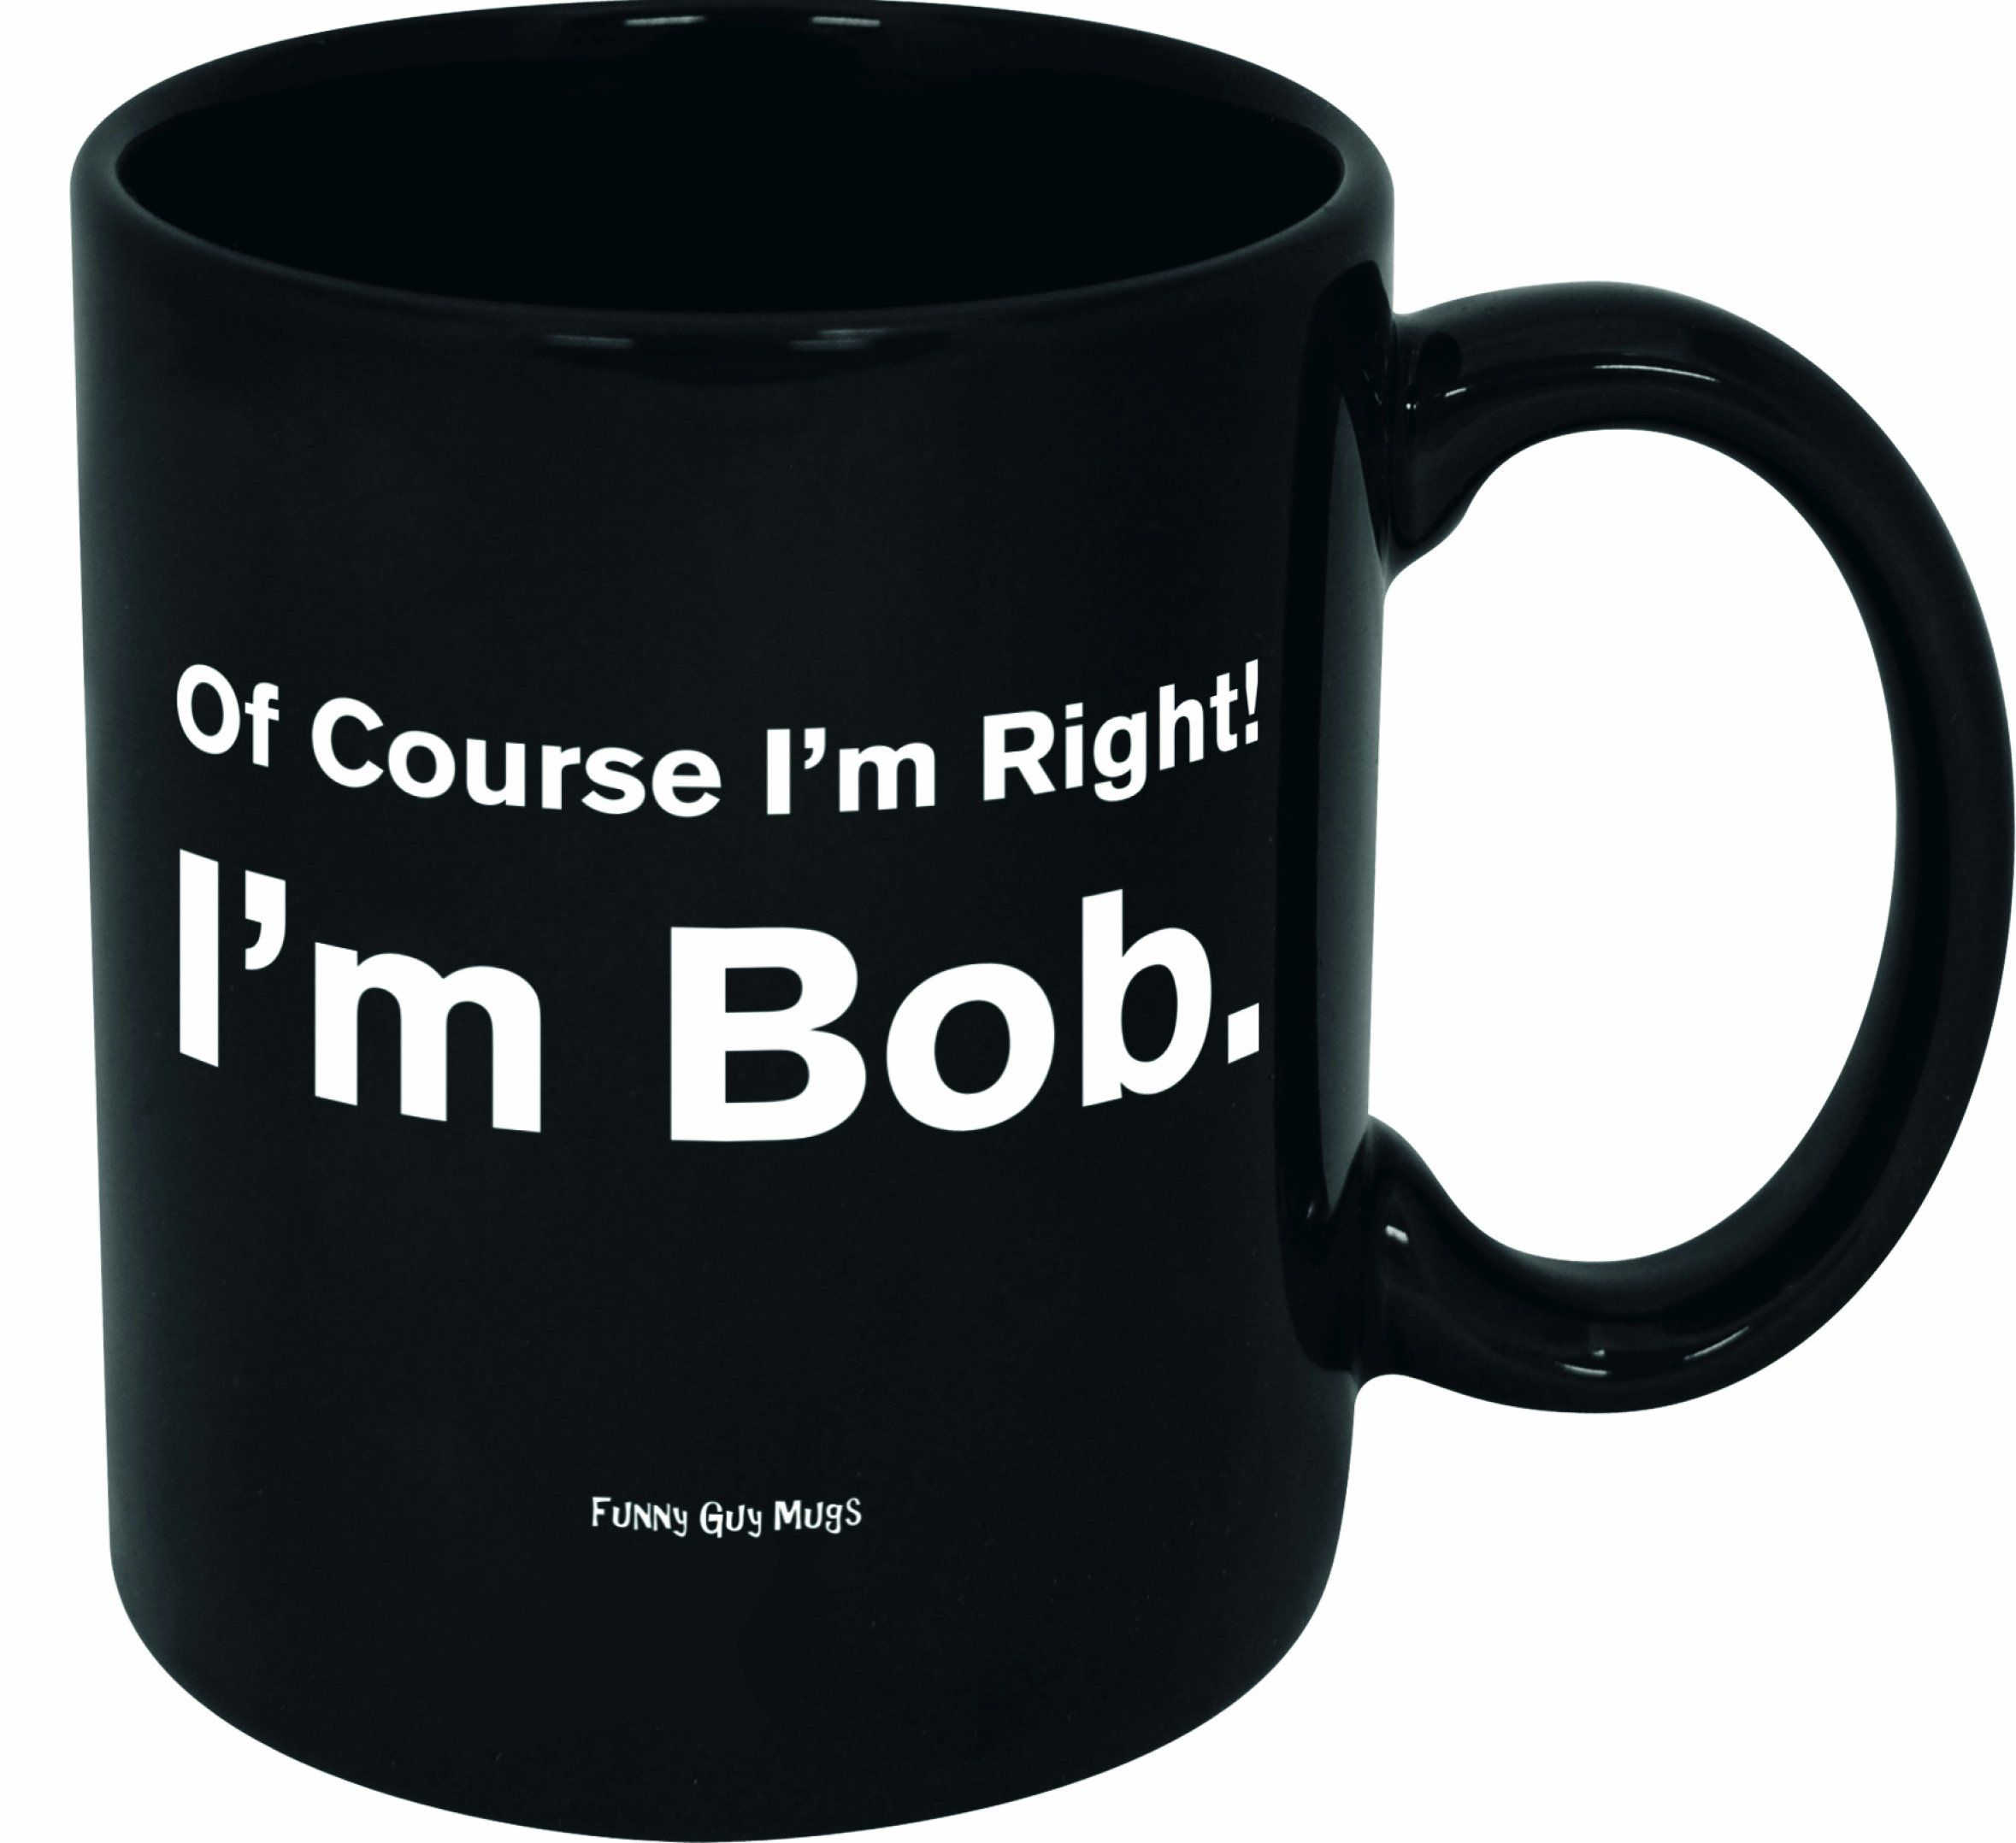 Amazon Com Funny Guy Mugs Of Course I M Right I M Bob Ceramic Coffee Mug Black 11 Ounce Kitchen Dining Mugs Funny Coffee Mugs Coffee Mugs